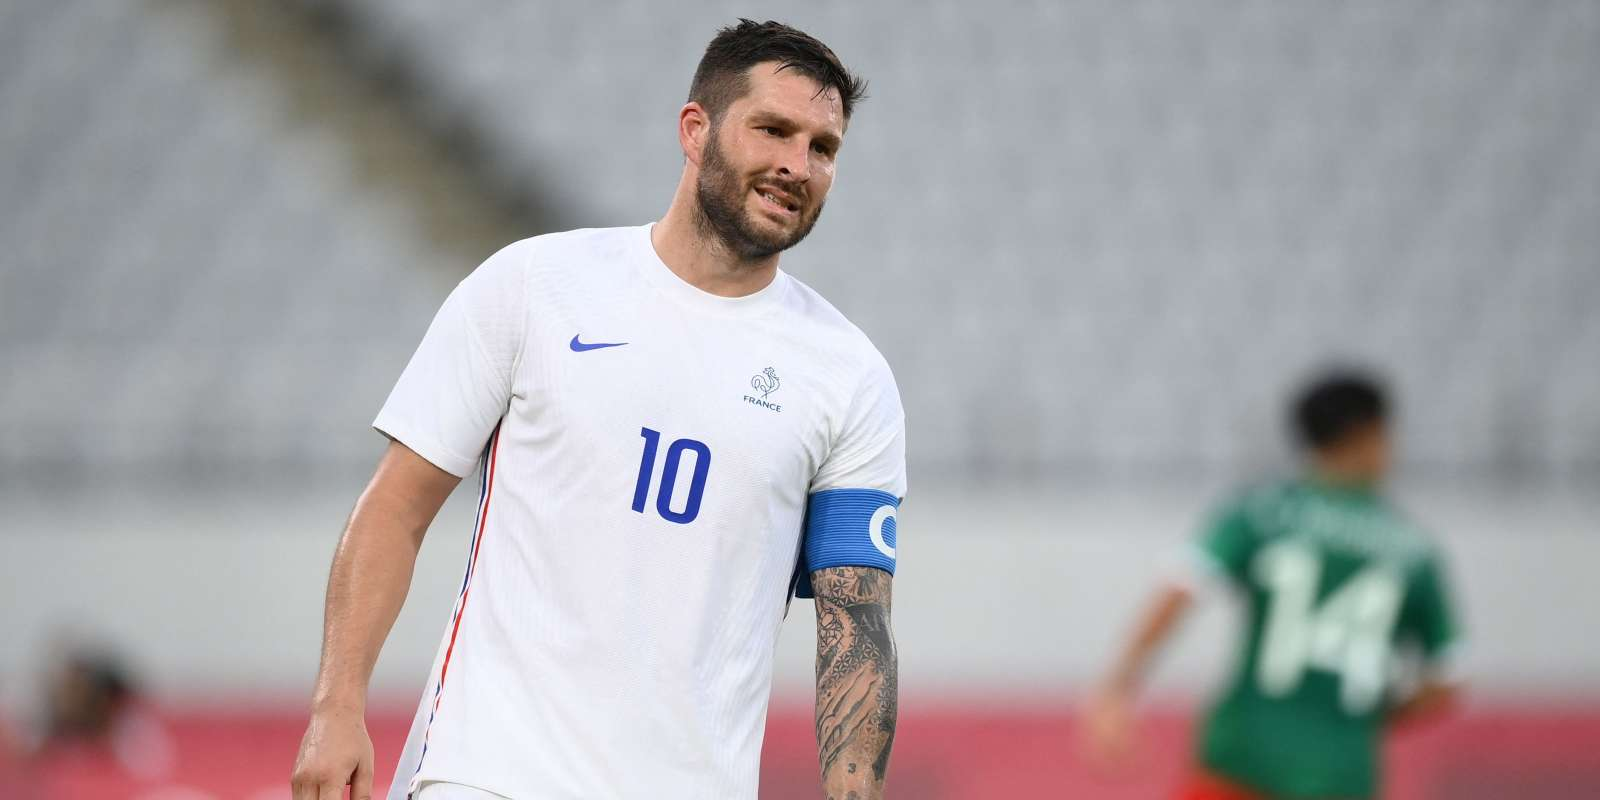 France's forward Andre-Pierre Gignac reacts during the Tokyo 2020 Olympic Games men's group A first round football match between Mexico and France at Tokyo Stadium in Tokyo on July 22, 2021. (Photo by FRANCK FIFE / AFP)